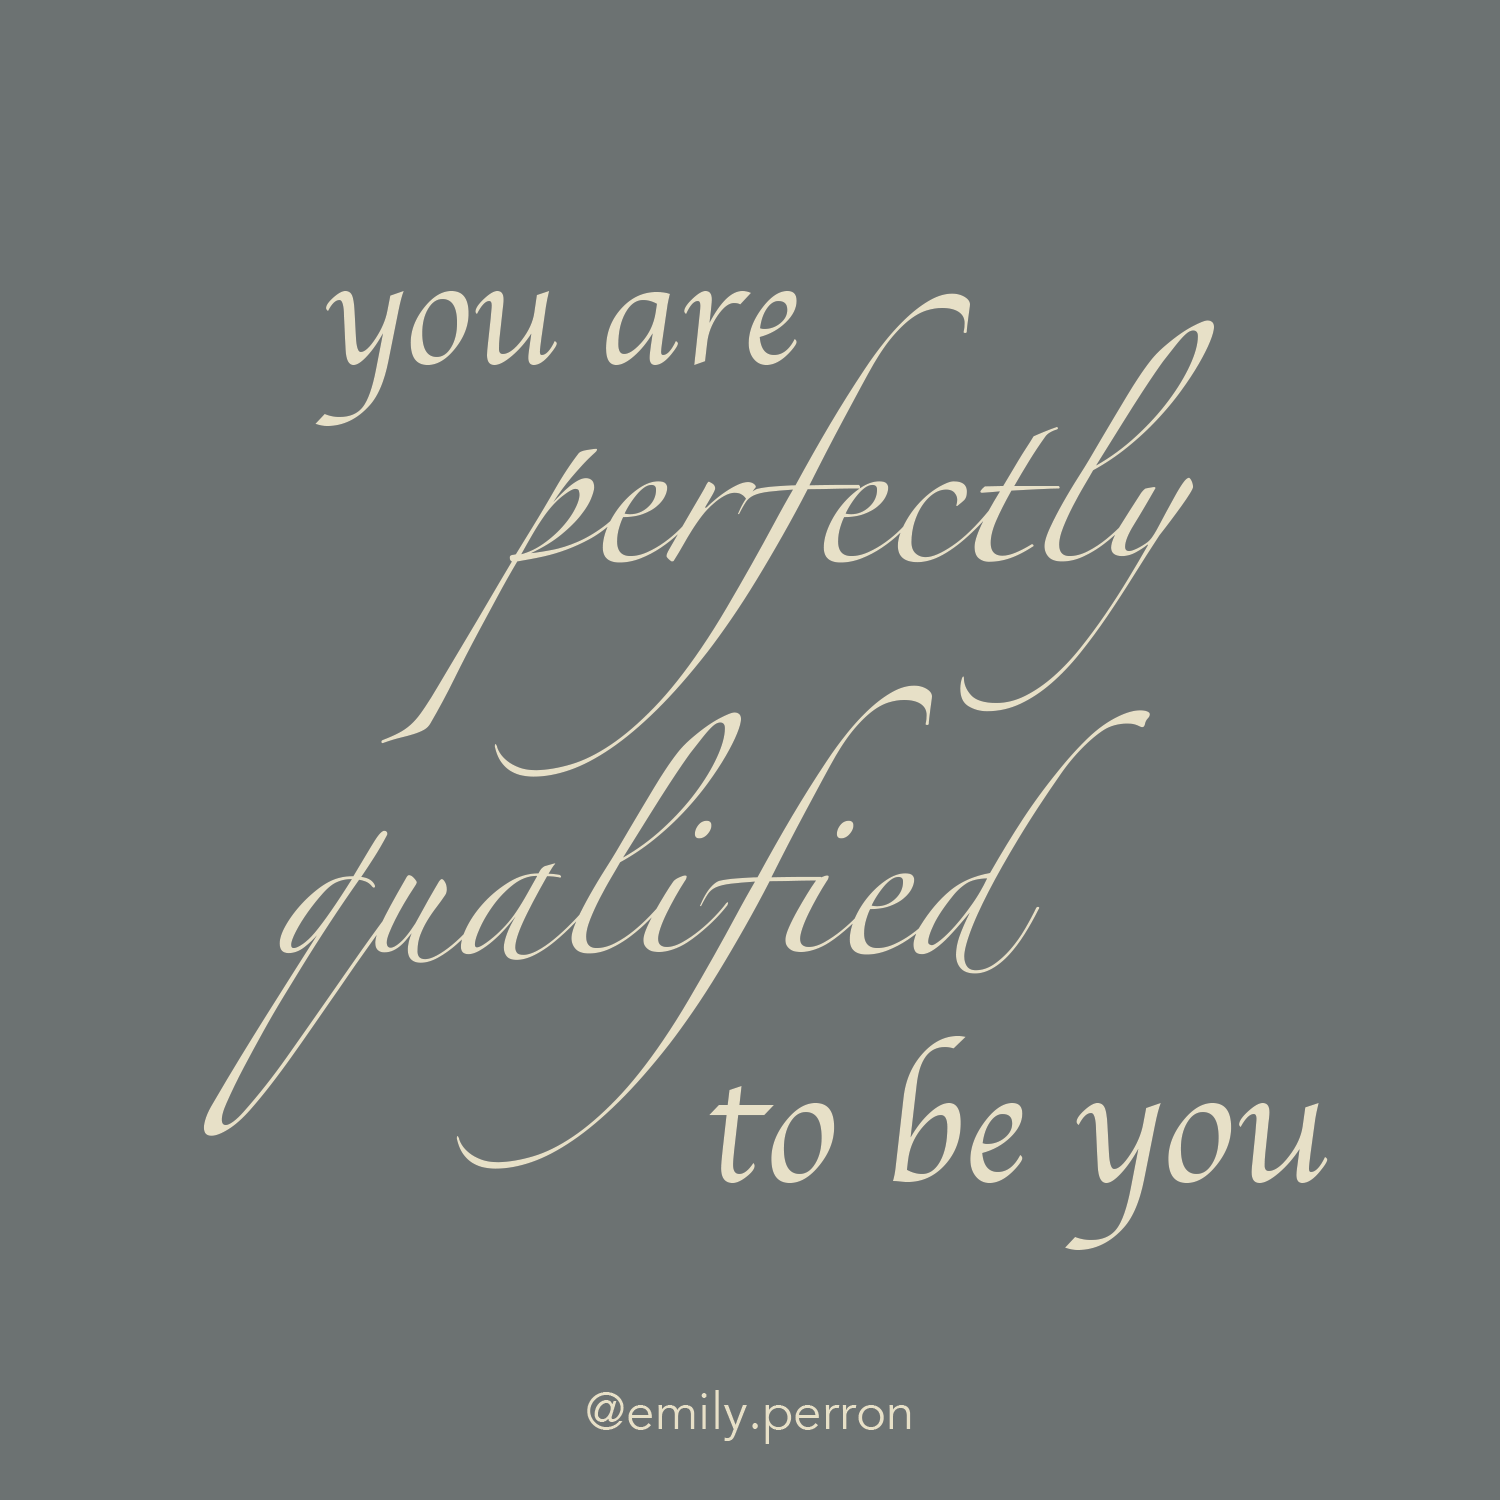 you are perfectly qualified to be you